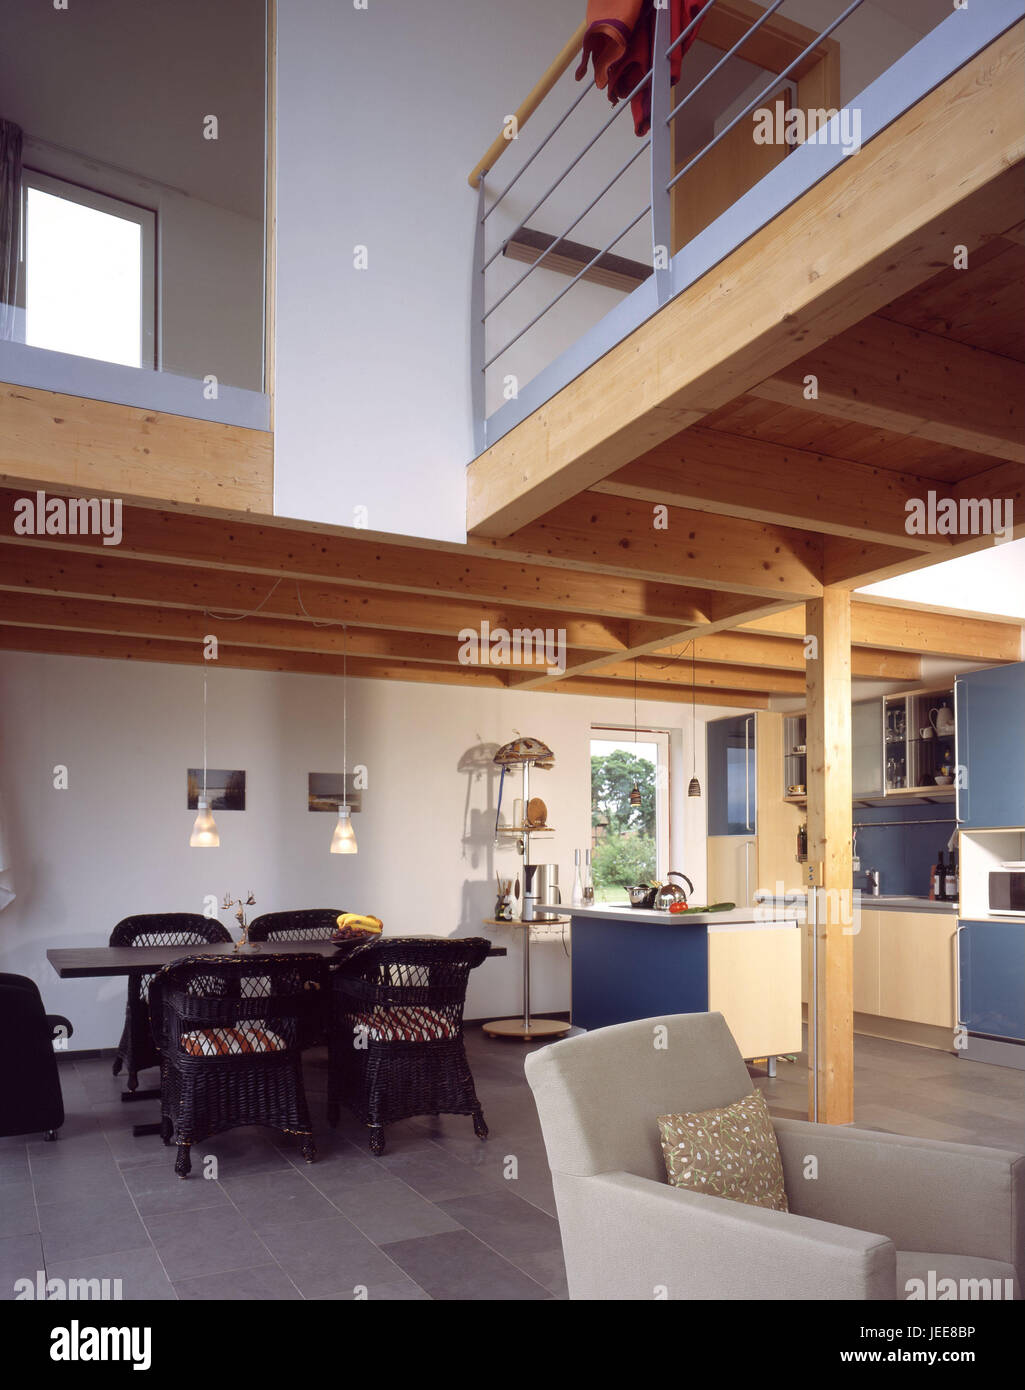 Single-family dwelling, cuisine, dining room, dining table ...